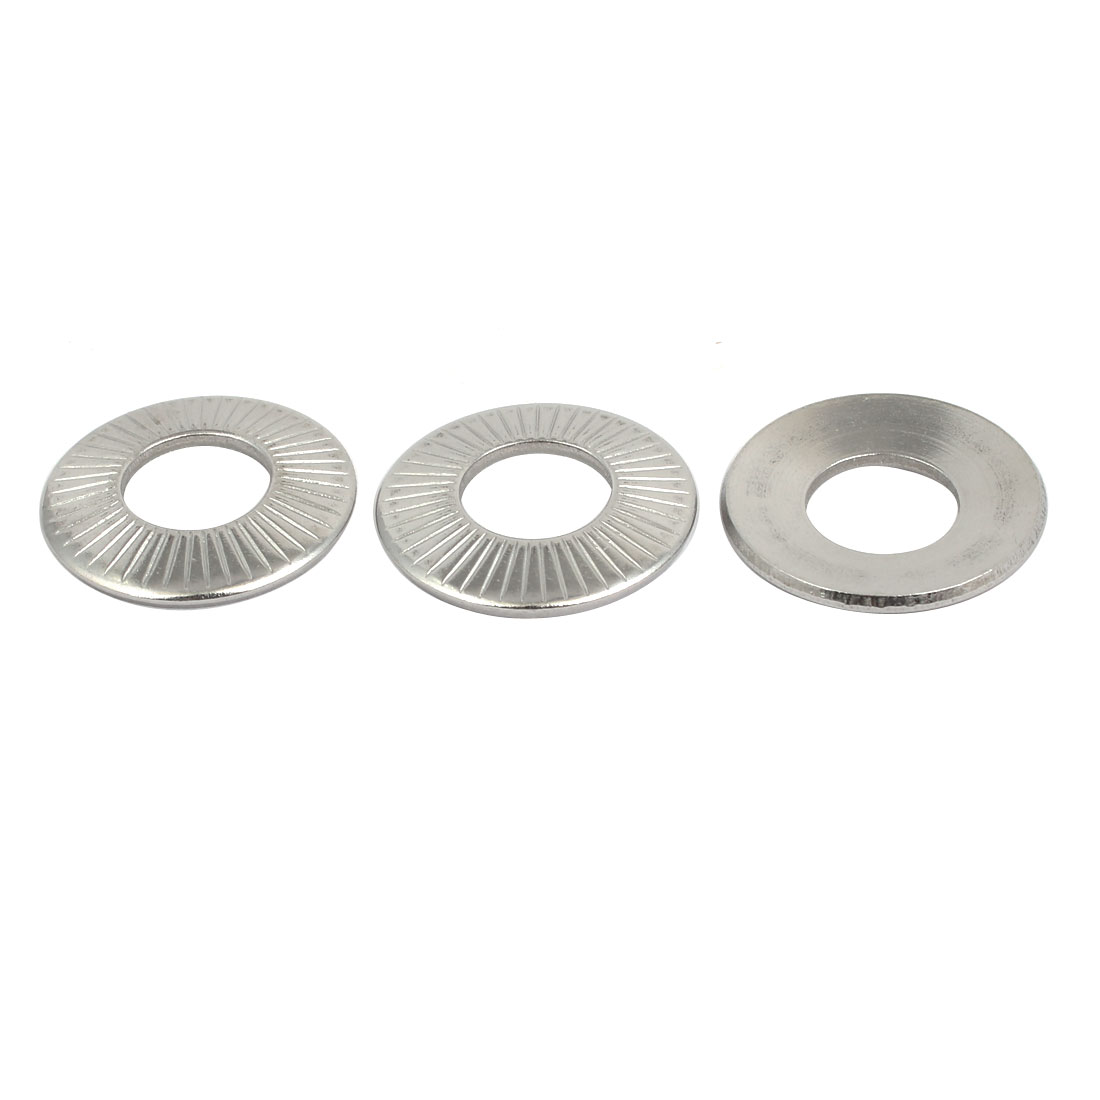 M12 304 Stainless Steel Industrial Locking Washer Silver Tone 3pcs